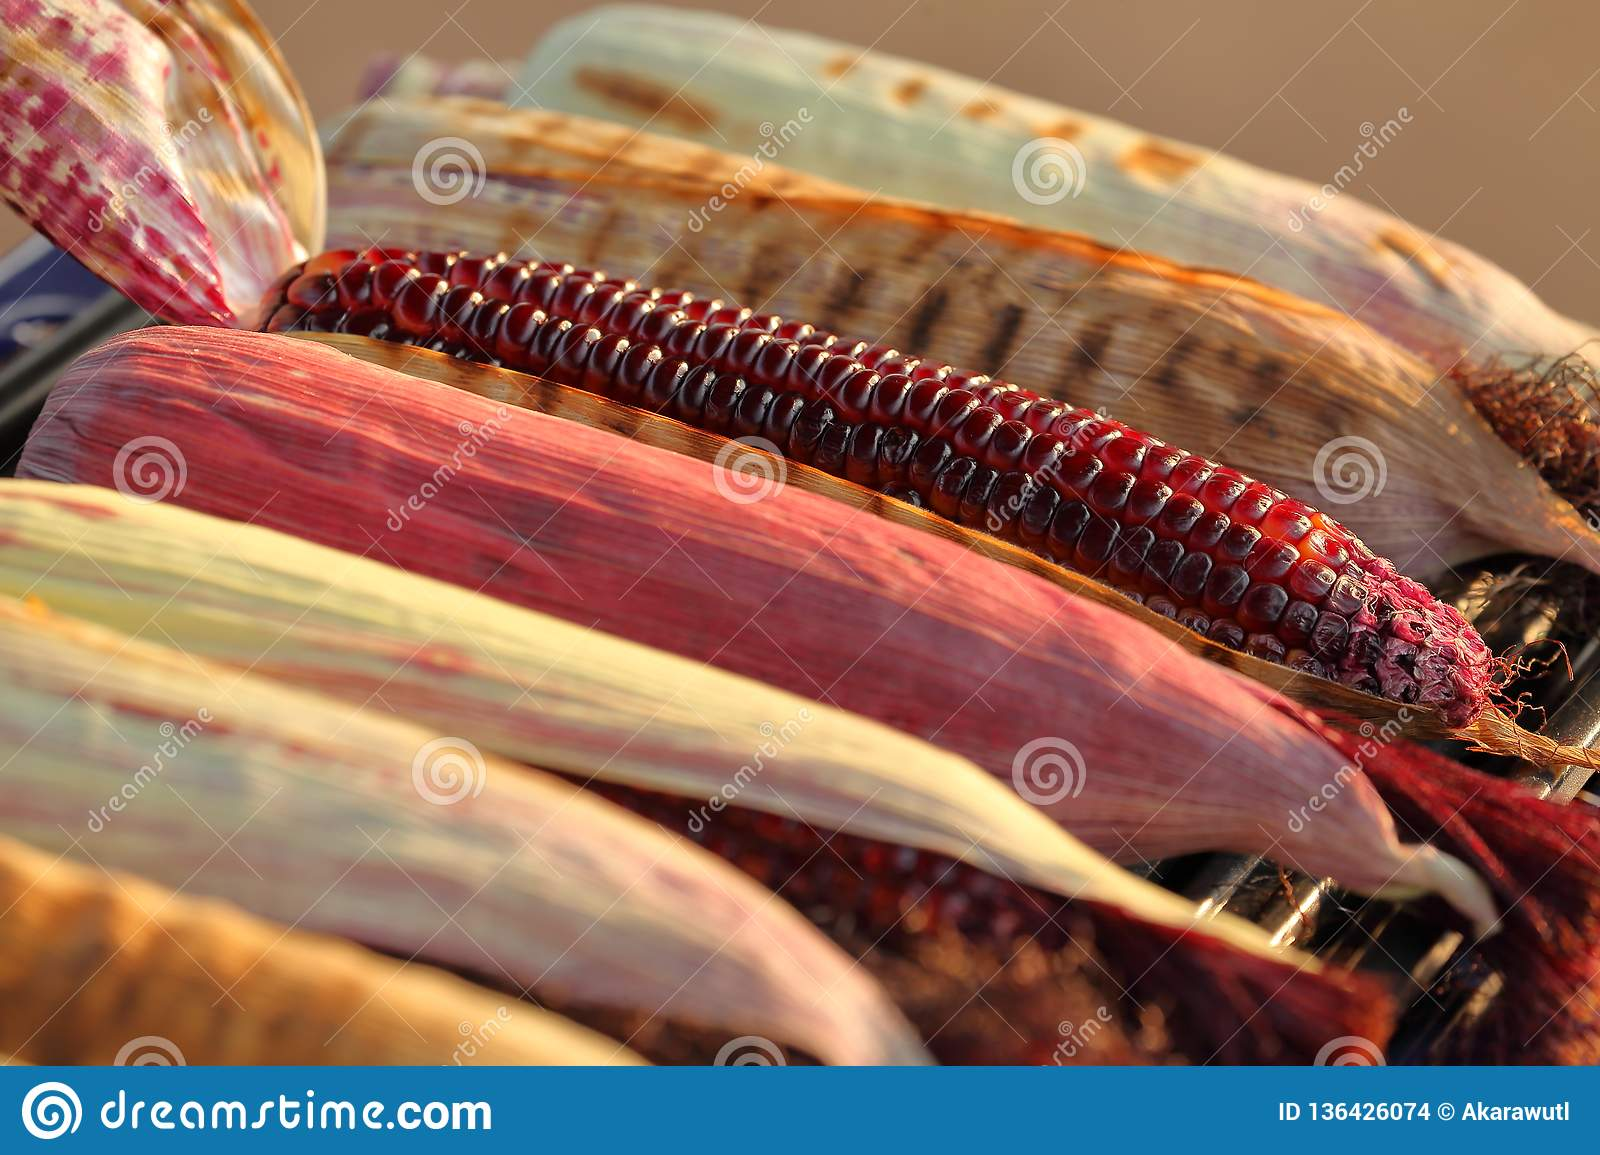 Mix of varieties of native corn and maize grilled in hot fire with charcoal